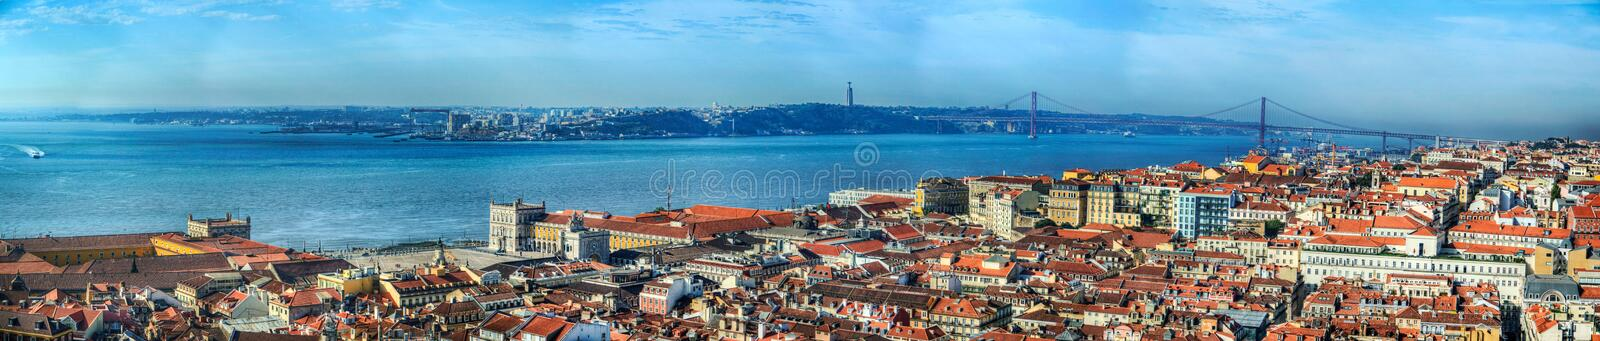 Panorama Lisboa e Tagus River foto de stock royalty free